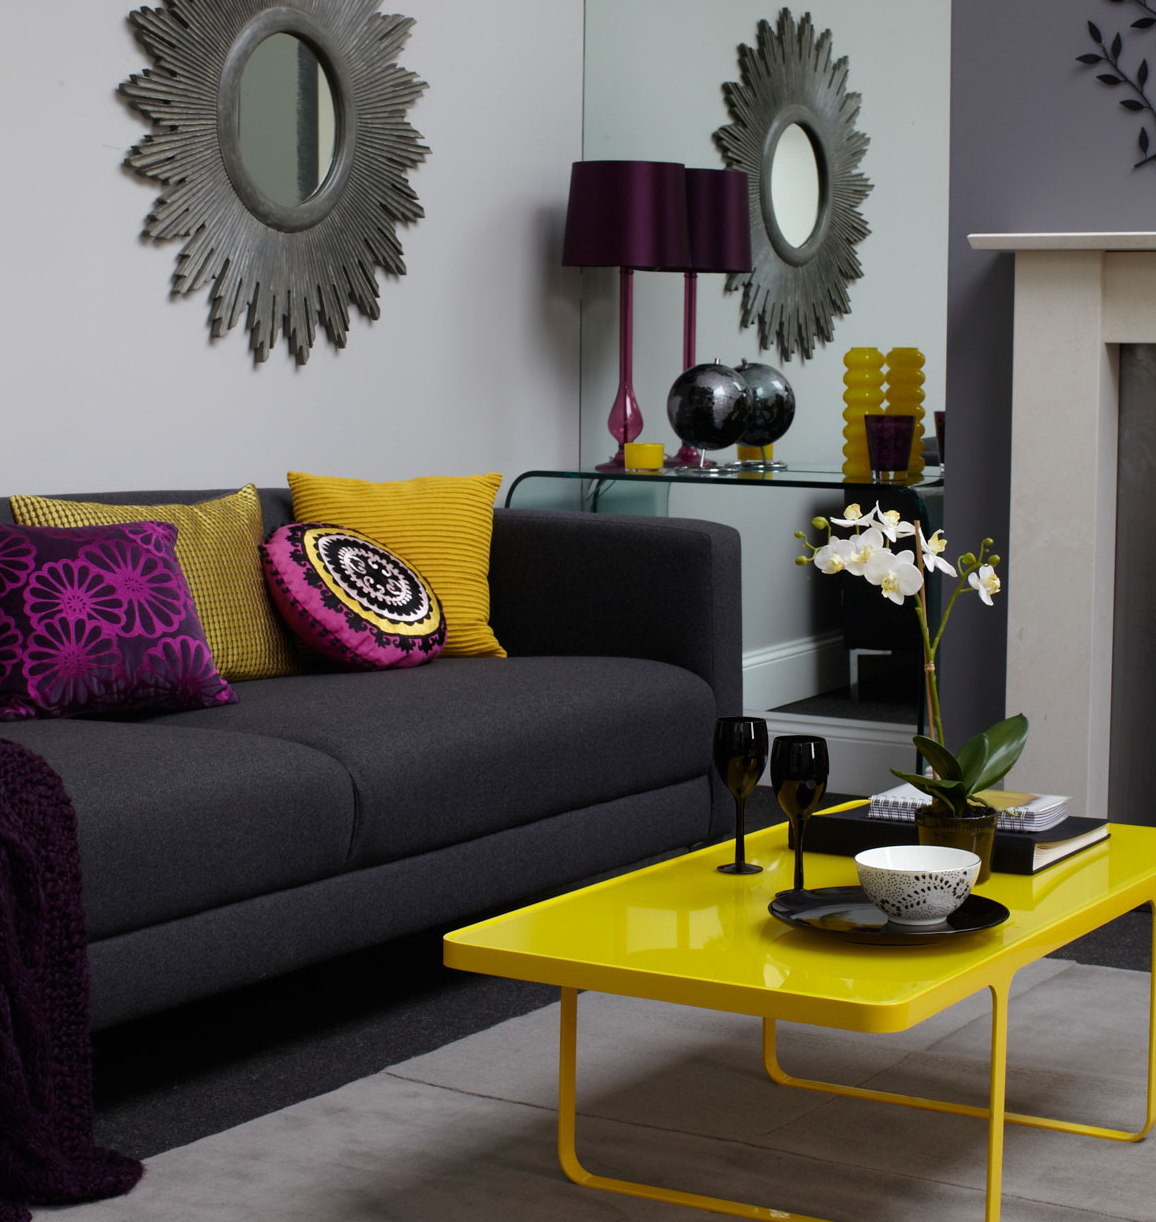 How to choose the right colours for interior design - Color schemes for interior design ...